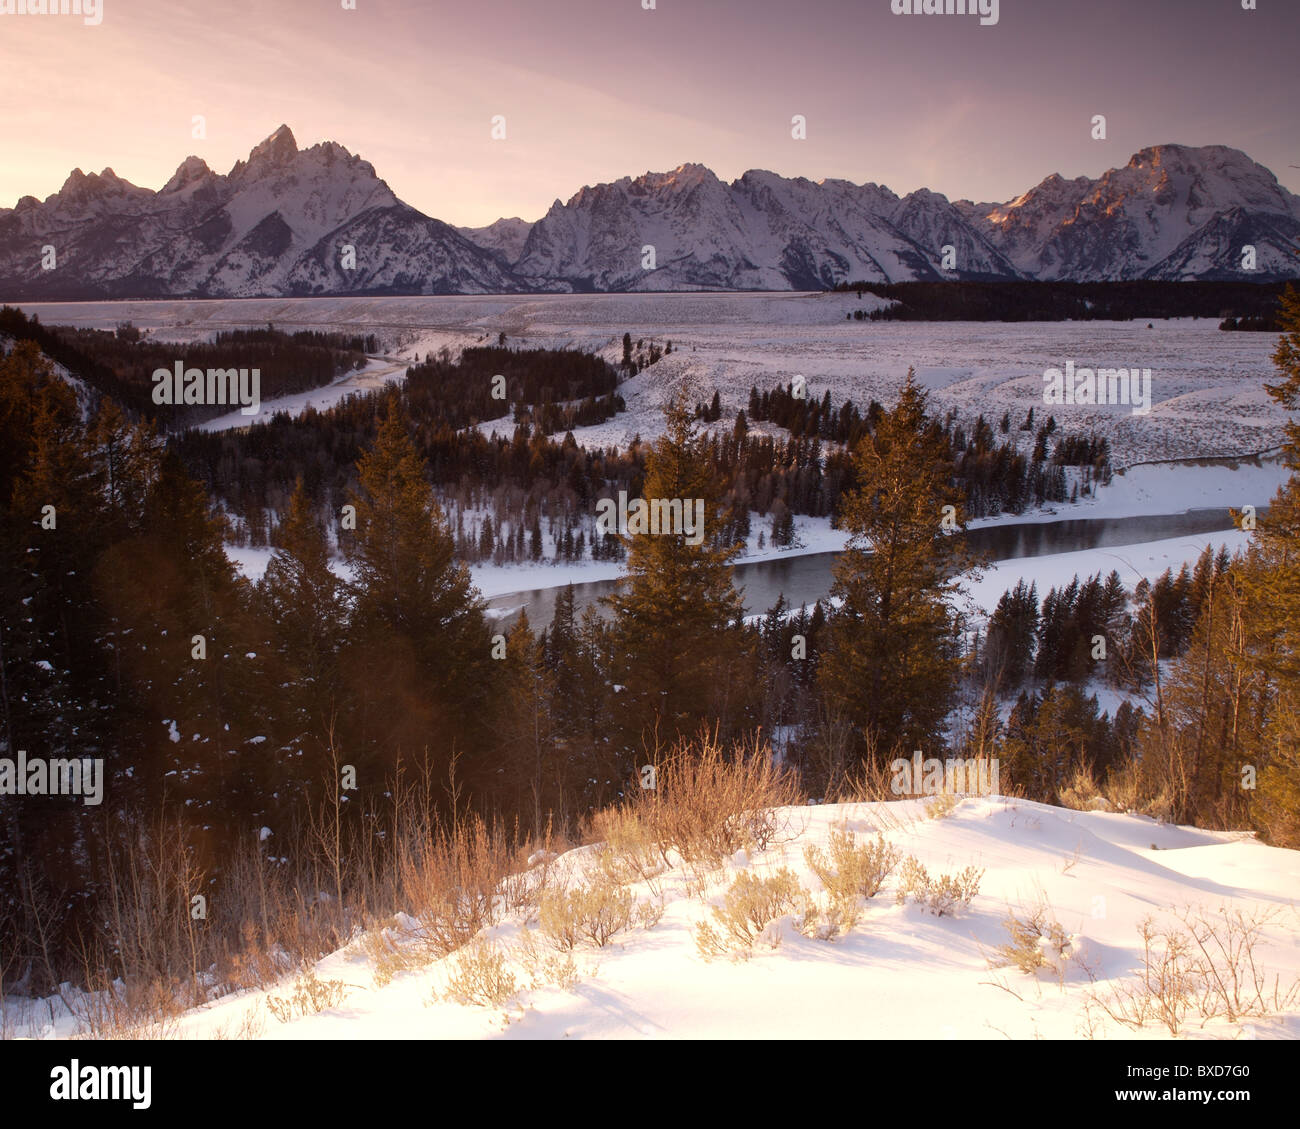 Tetons on New Year's Day - Stock Image